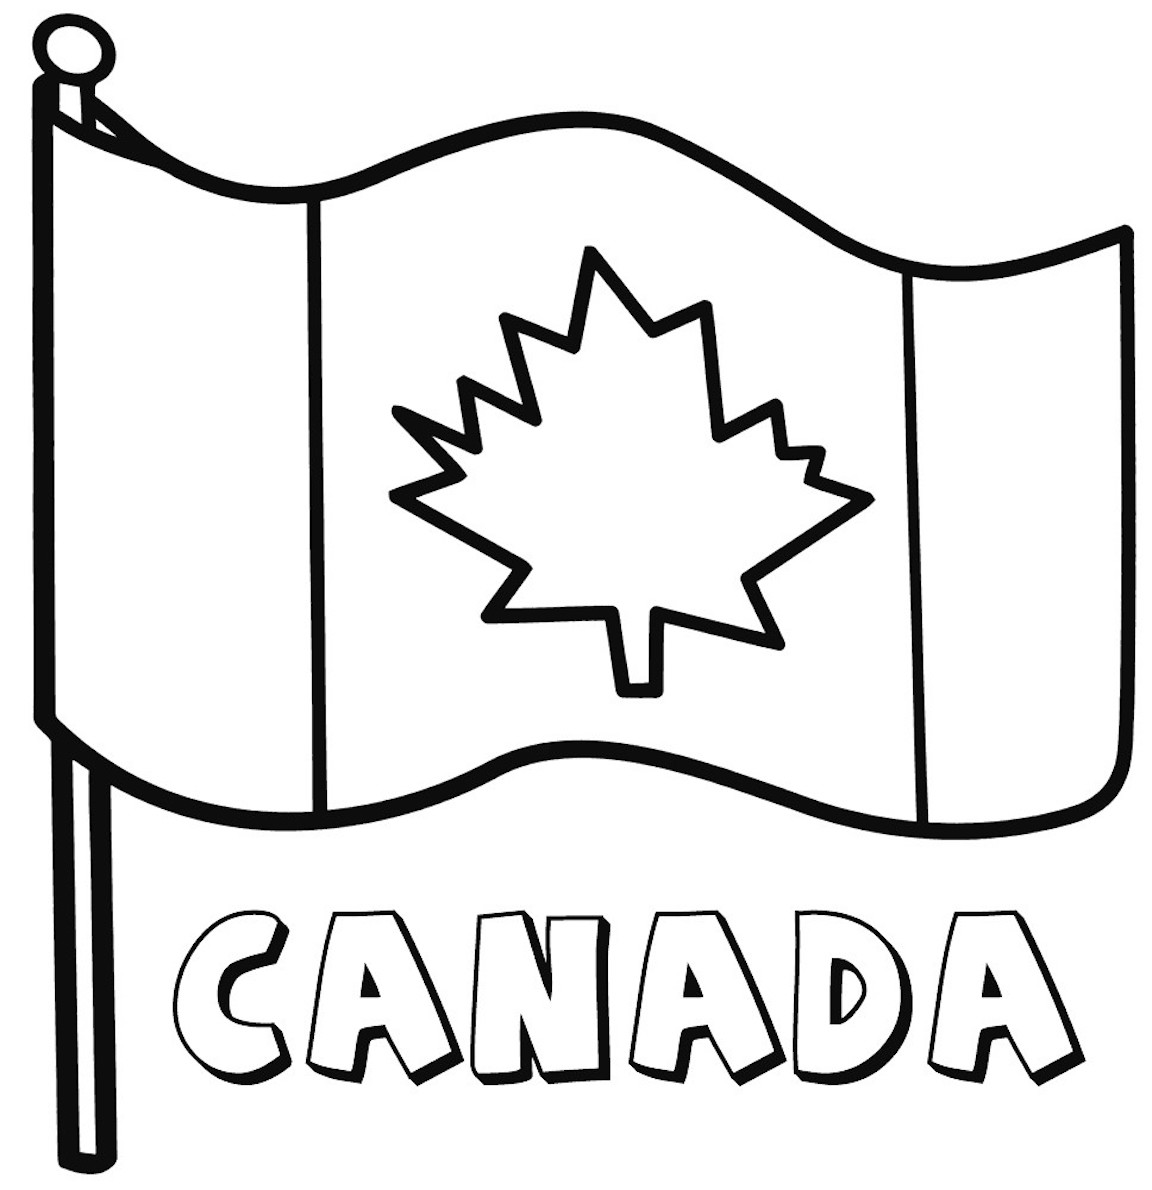 Canadian Flag Coloring Pages And Other Free Printable